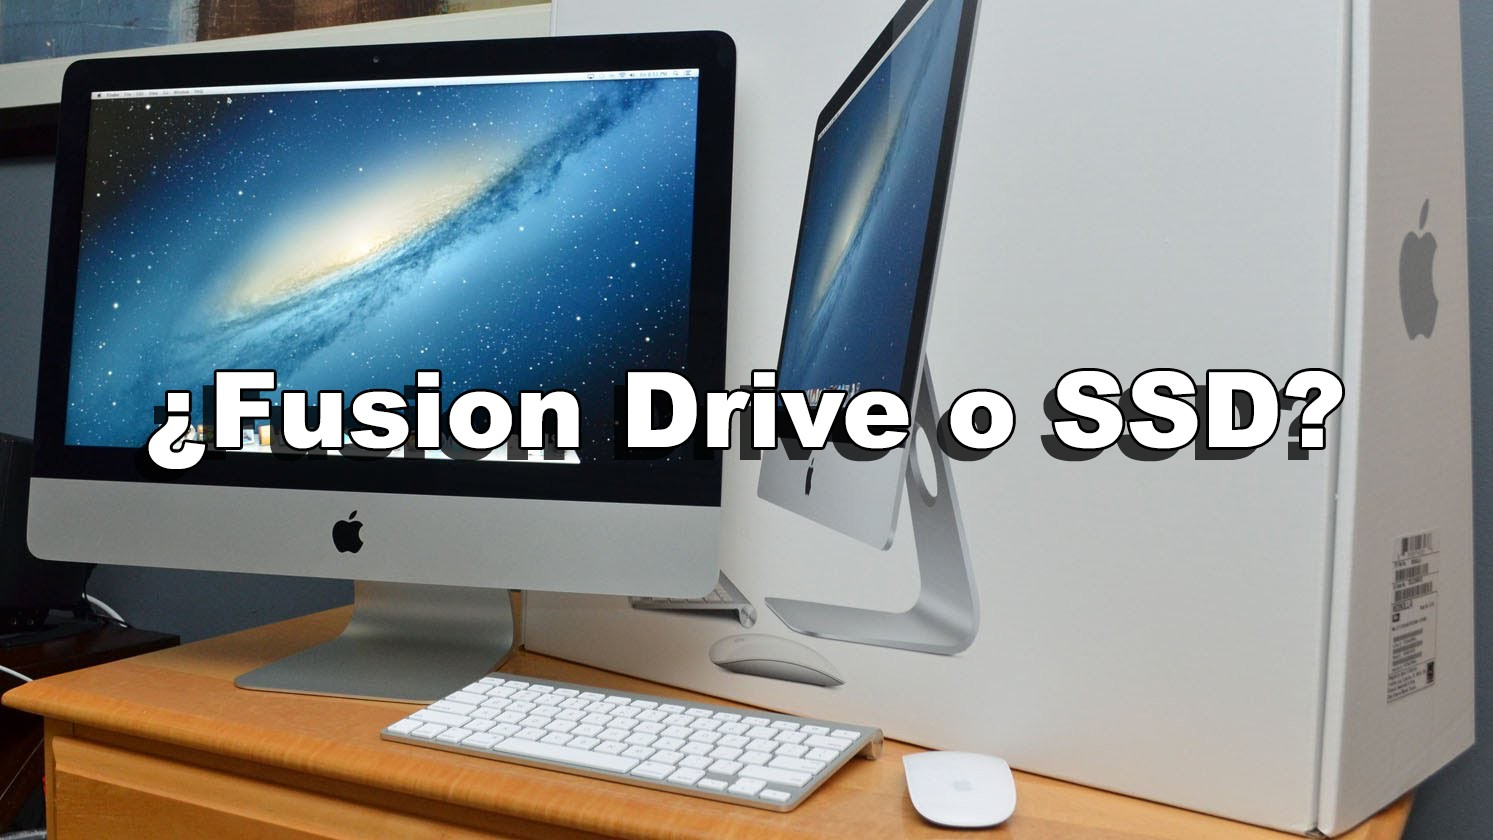 escapedigital-Comprar un mac con ¿Fusion Drive o SSD?